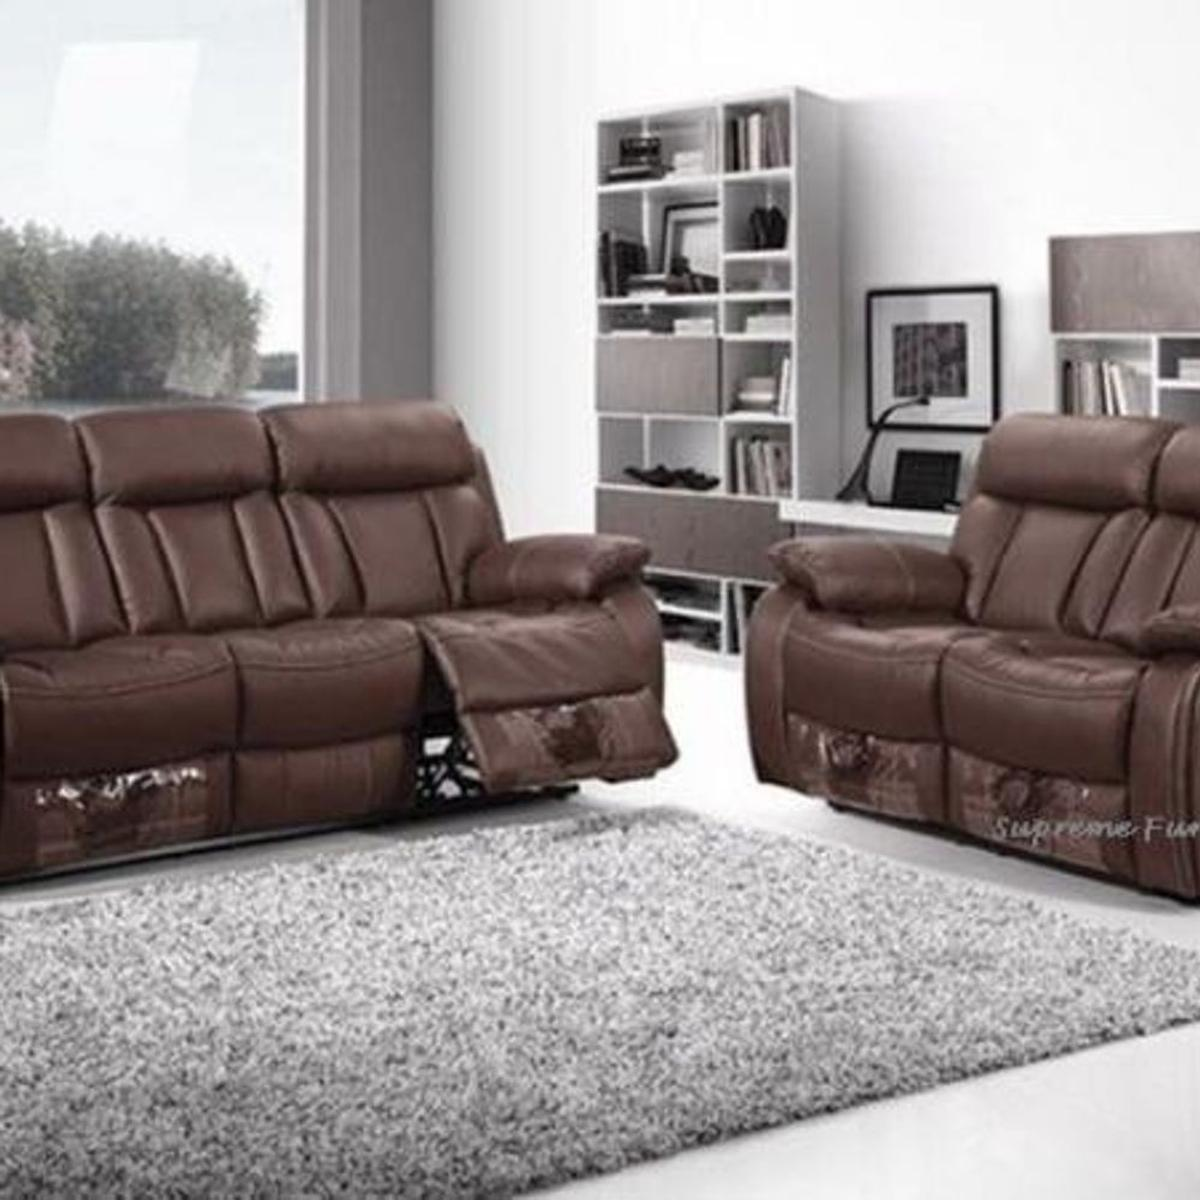 Leather Sofa, Recliners, 3 + 2, SALE